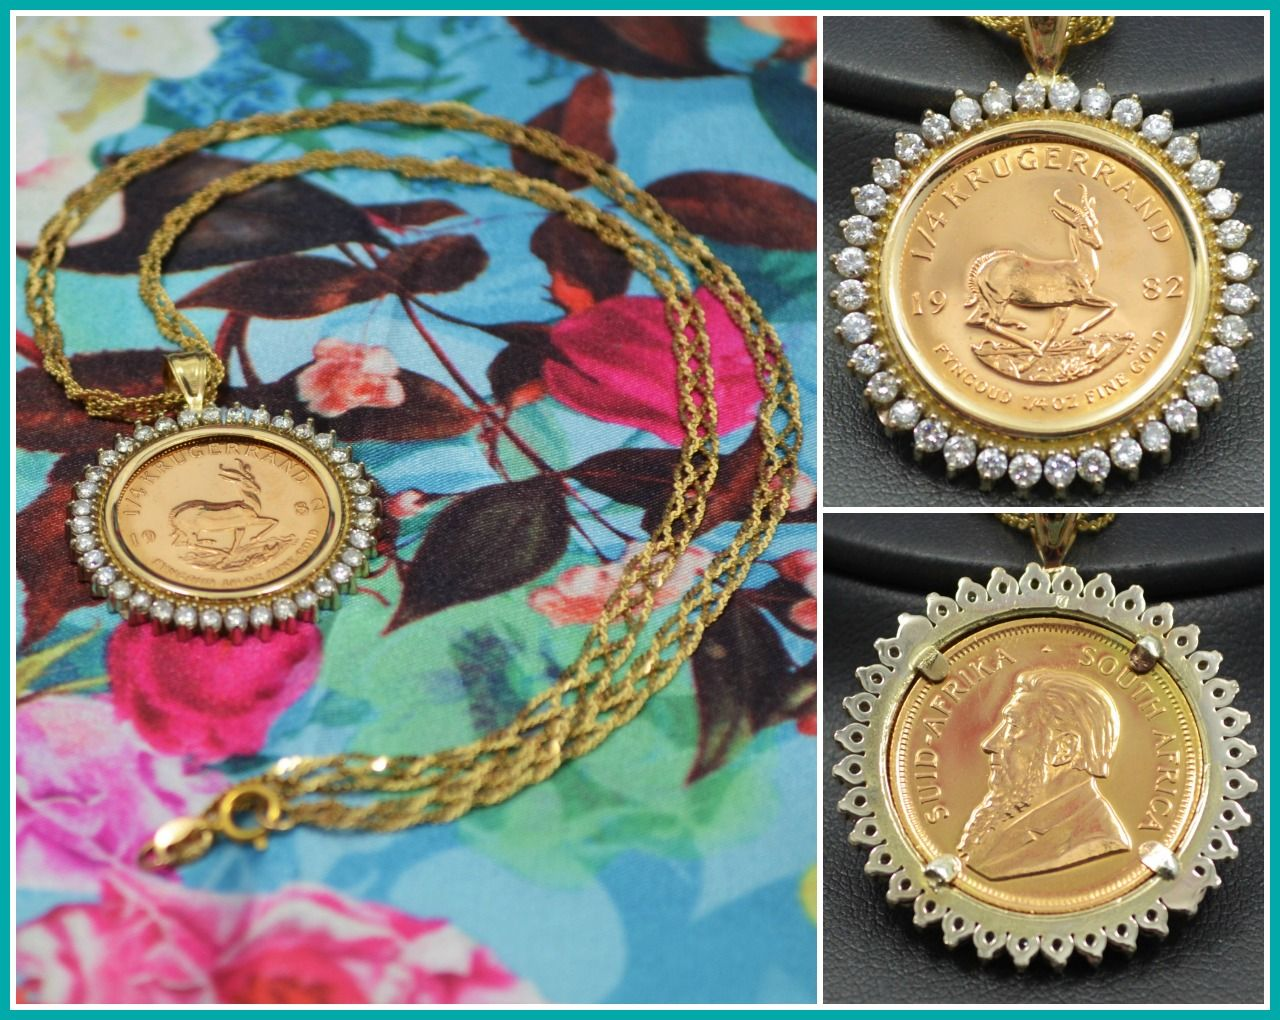 1982 South African Krugerrand Coin Pendant With Diamond Details Vintage 1 4oz 22k Fine Gold Coin Necklace Gold Coin Necklace Coin Necklace Gold Coins